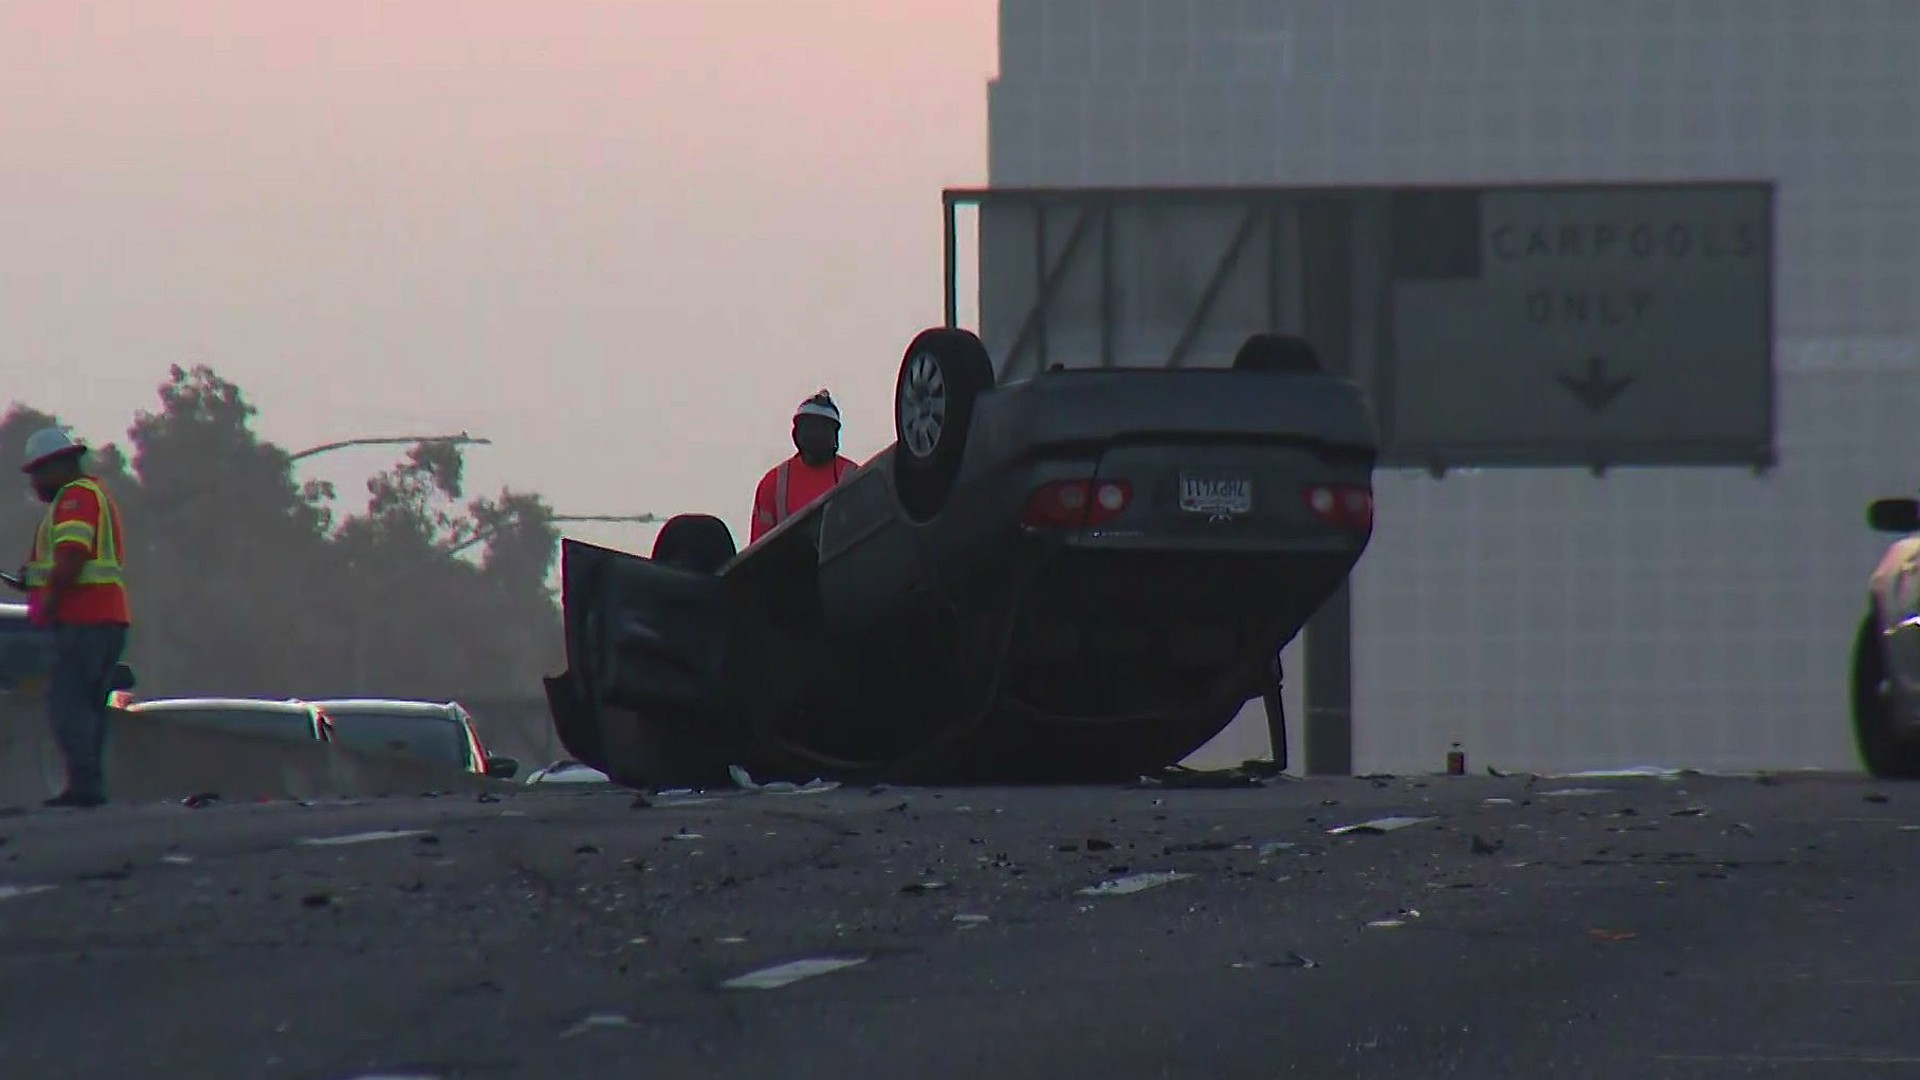 Crews respond to a fatal crash on the 405 Freeway in the Harbor Gateway area on Sept. 24, 2020. (KTLA)